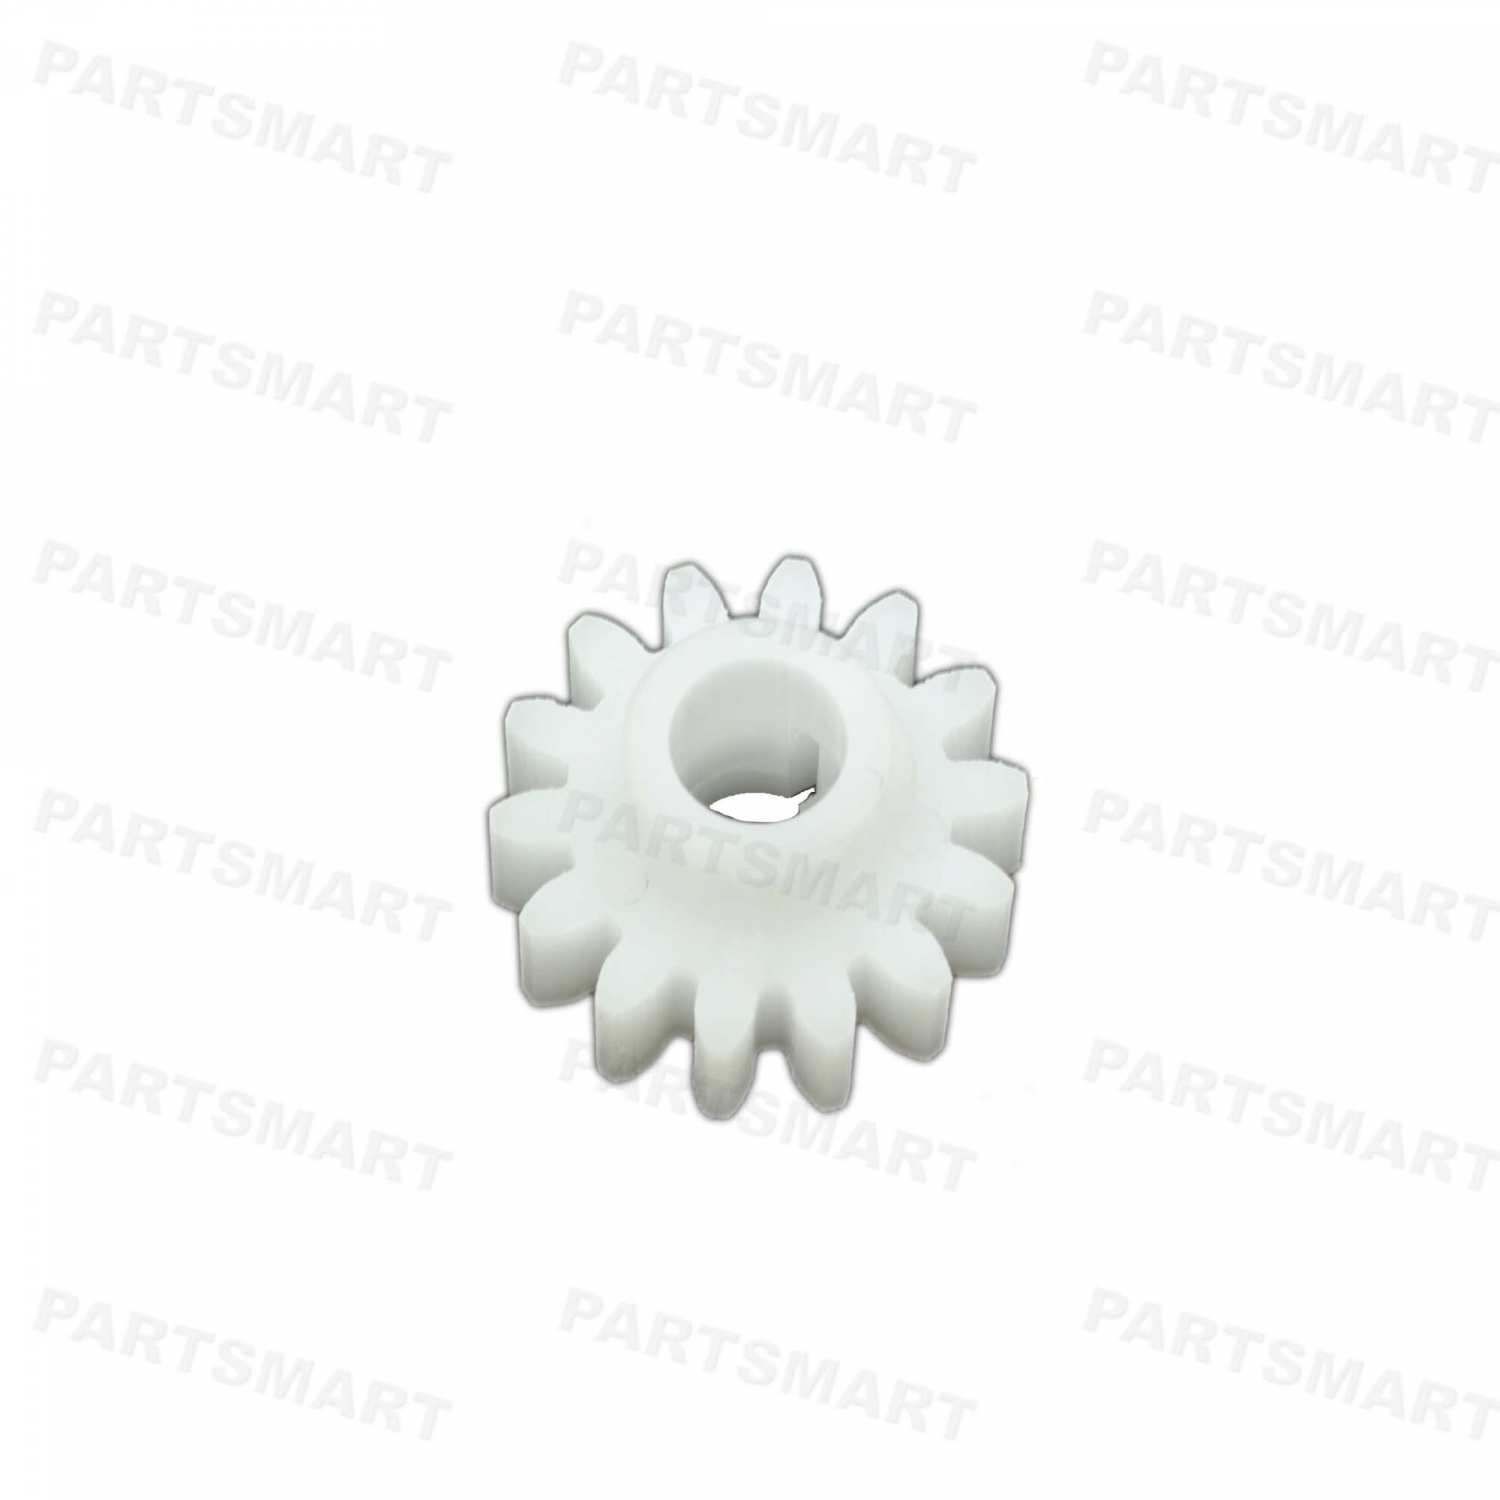 RS6-0442-000 Fuser Gear (14T) for HP LaserJet 2100